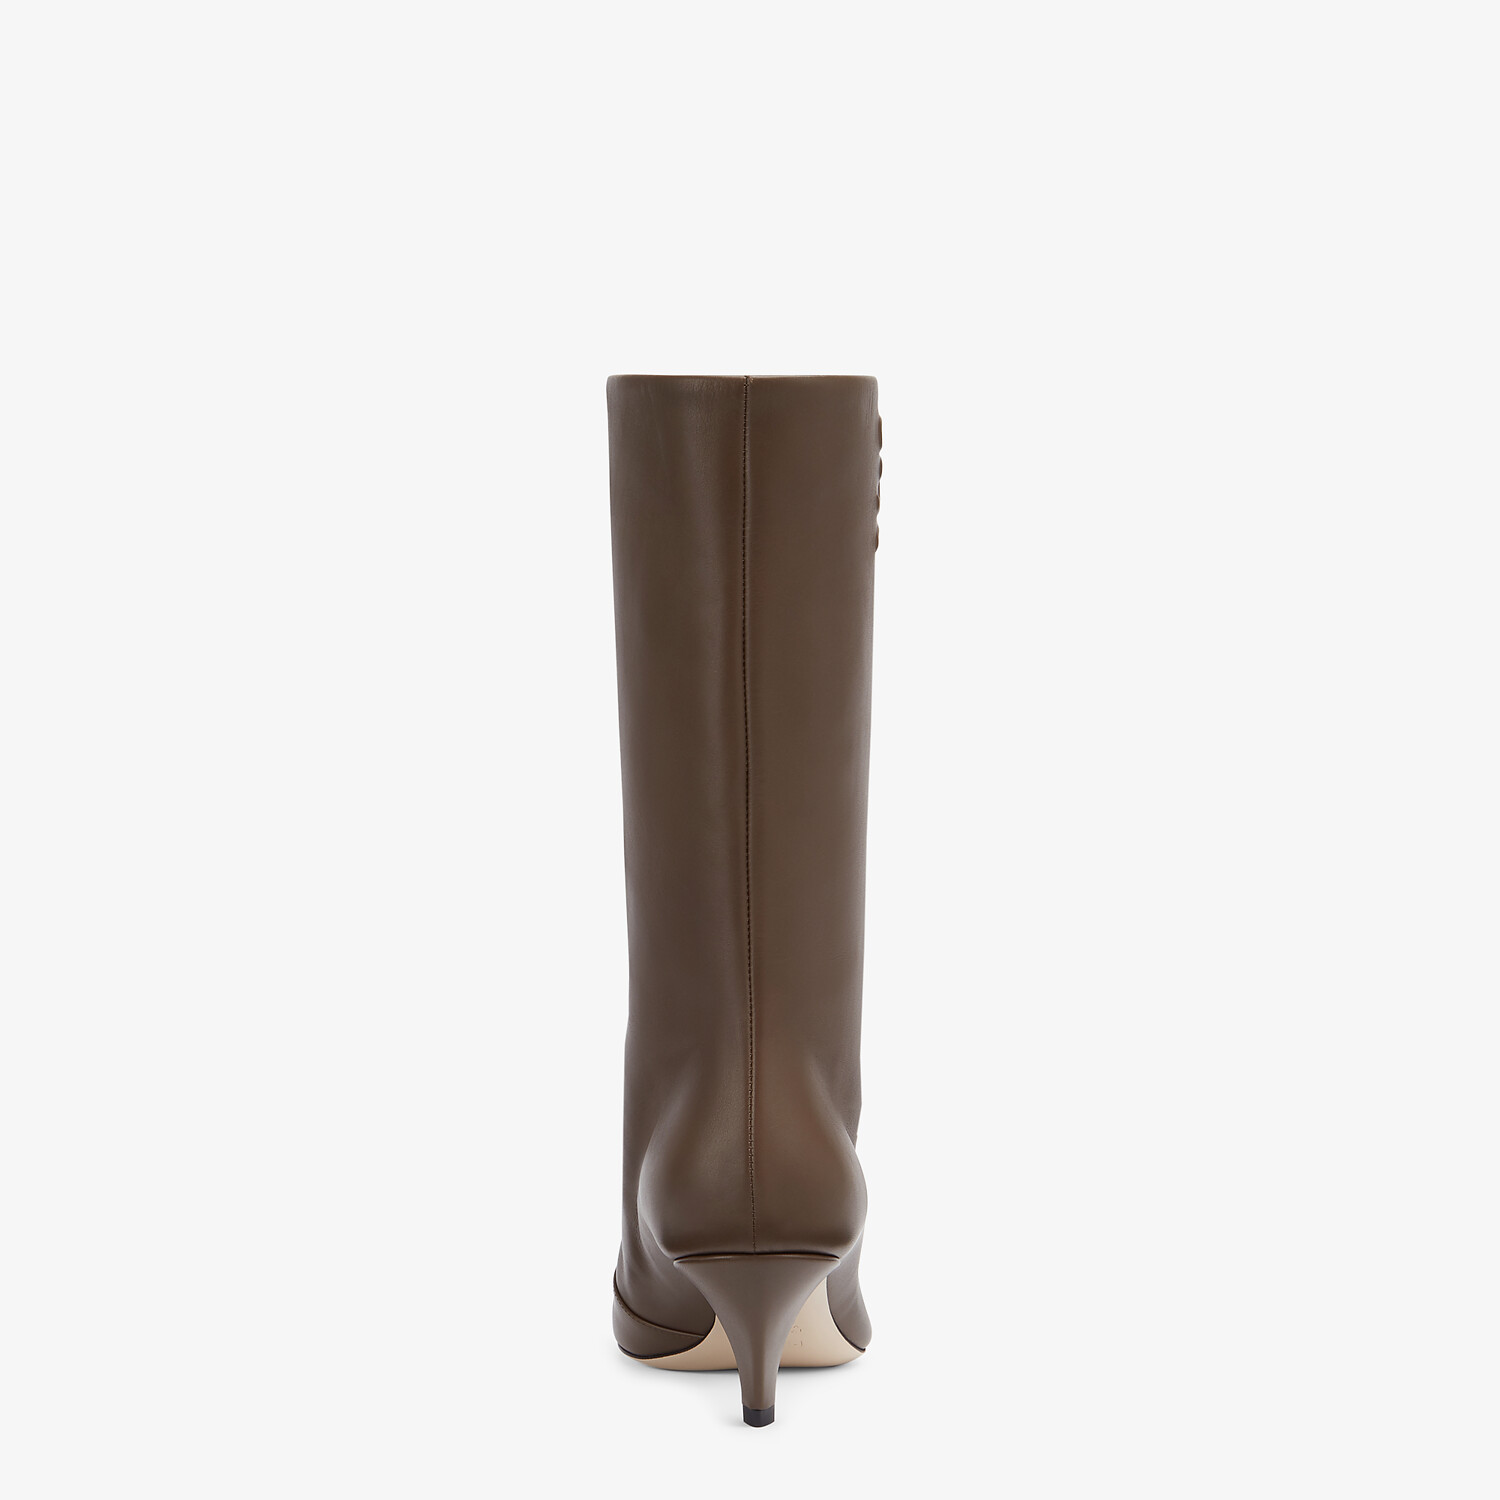 FENDI KARLIGRAPHY - Brown leather boots with medium heel - view 3 detail